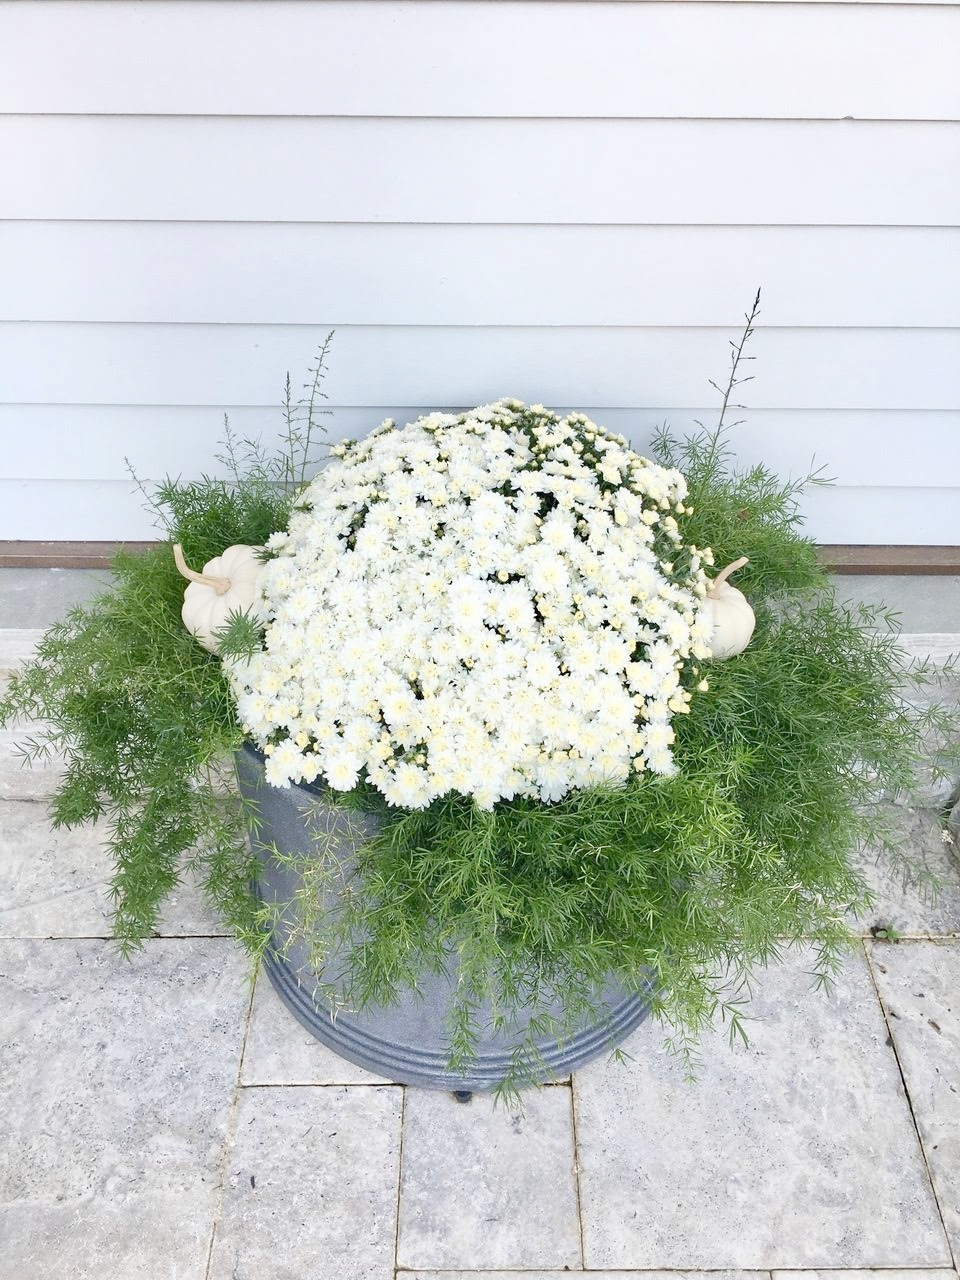 White mums, white pumpkins, and asparagus fern in galvanized tub